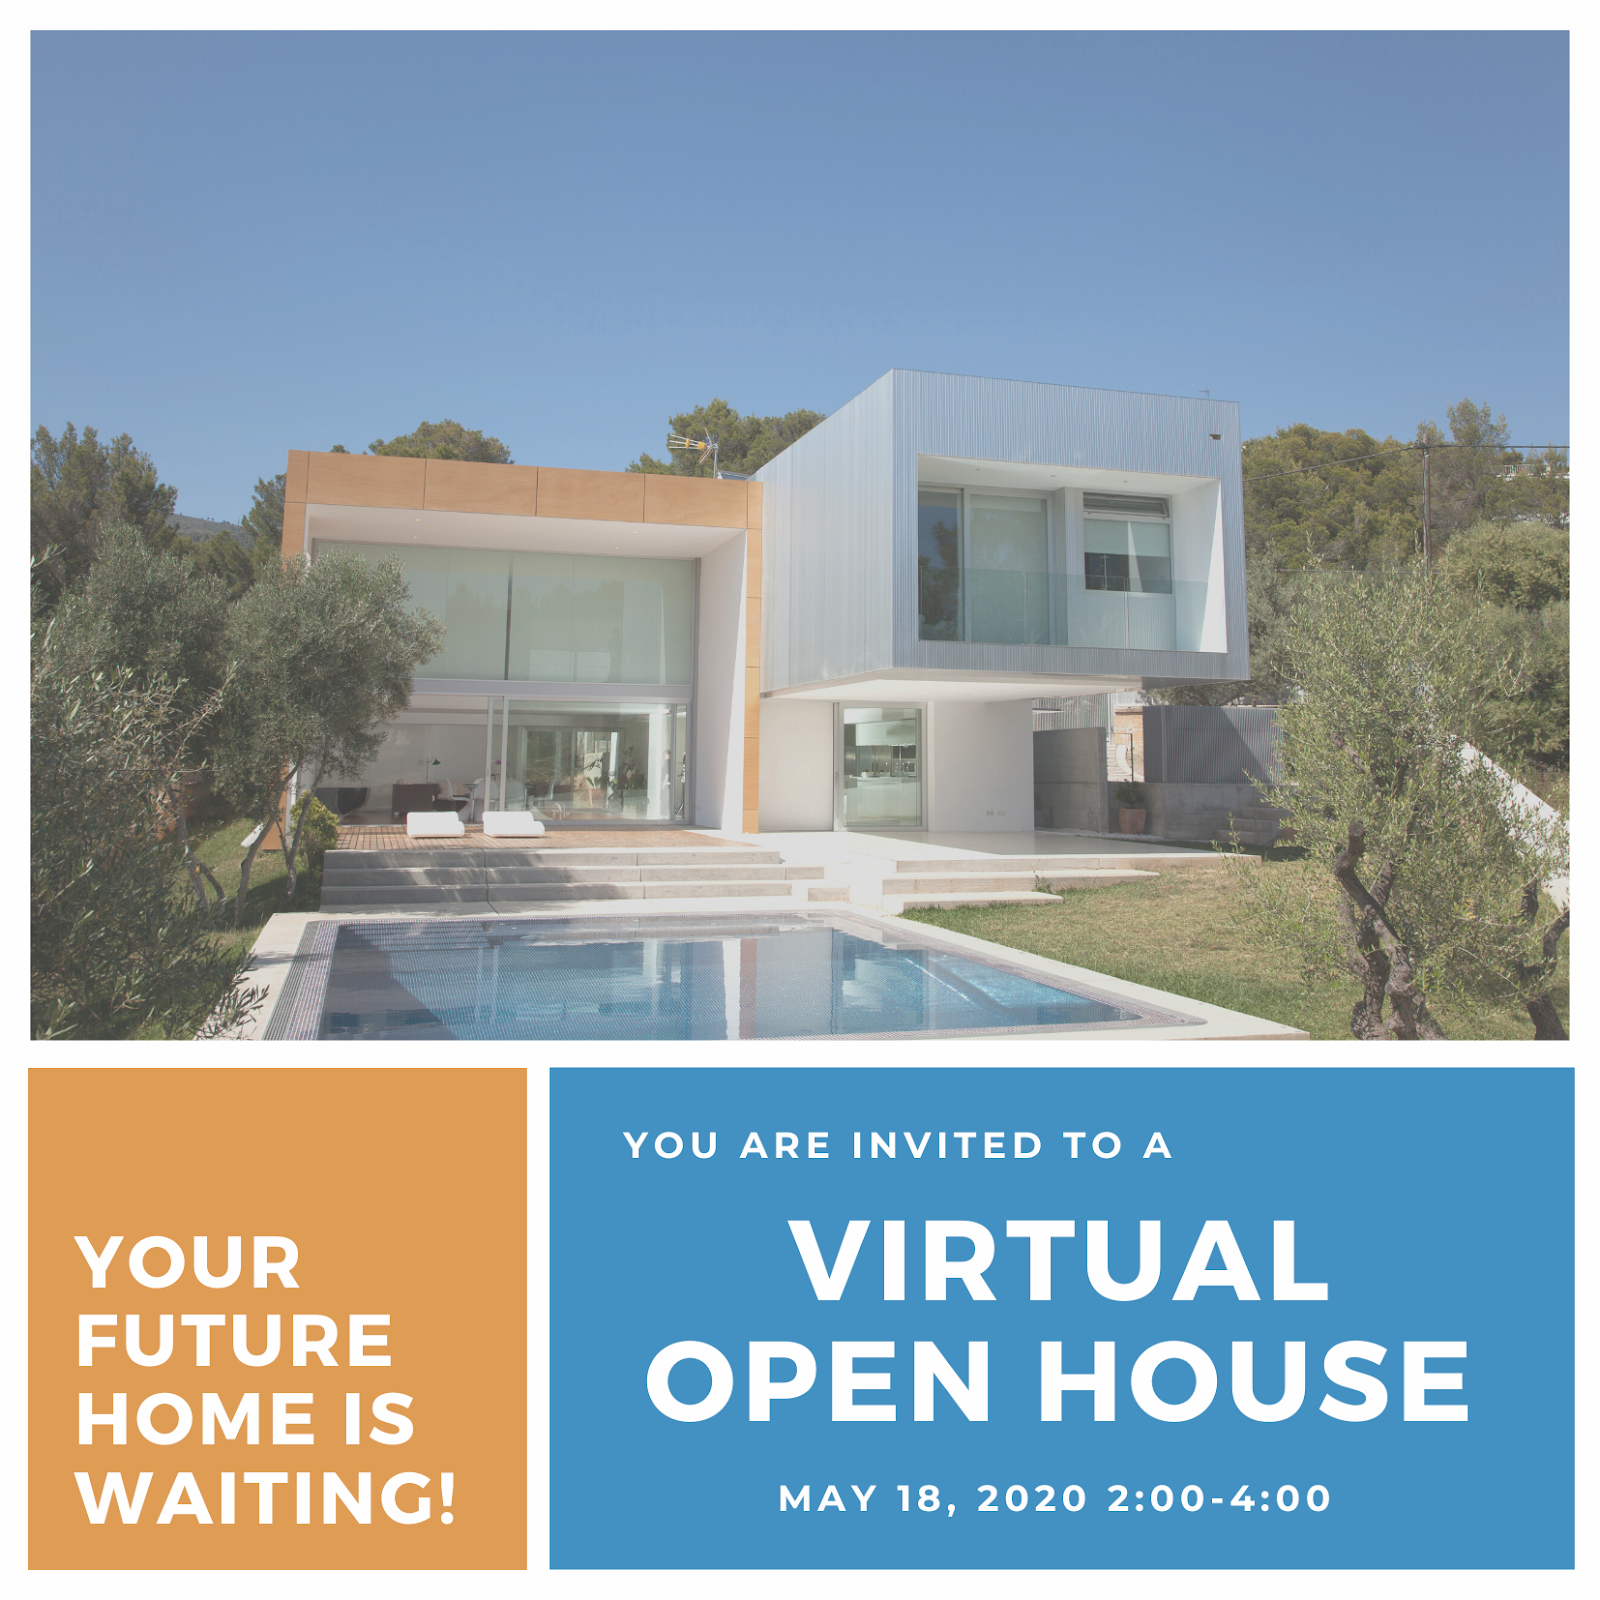 Virtual Open House Signs